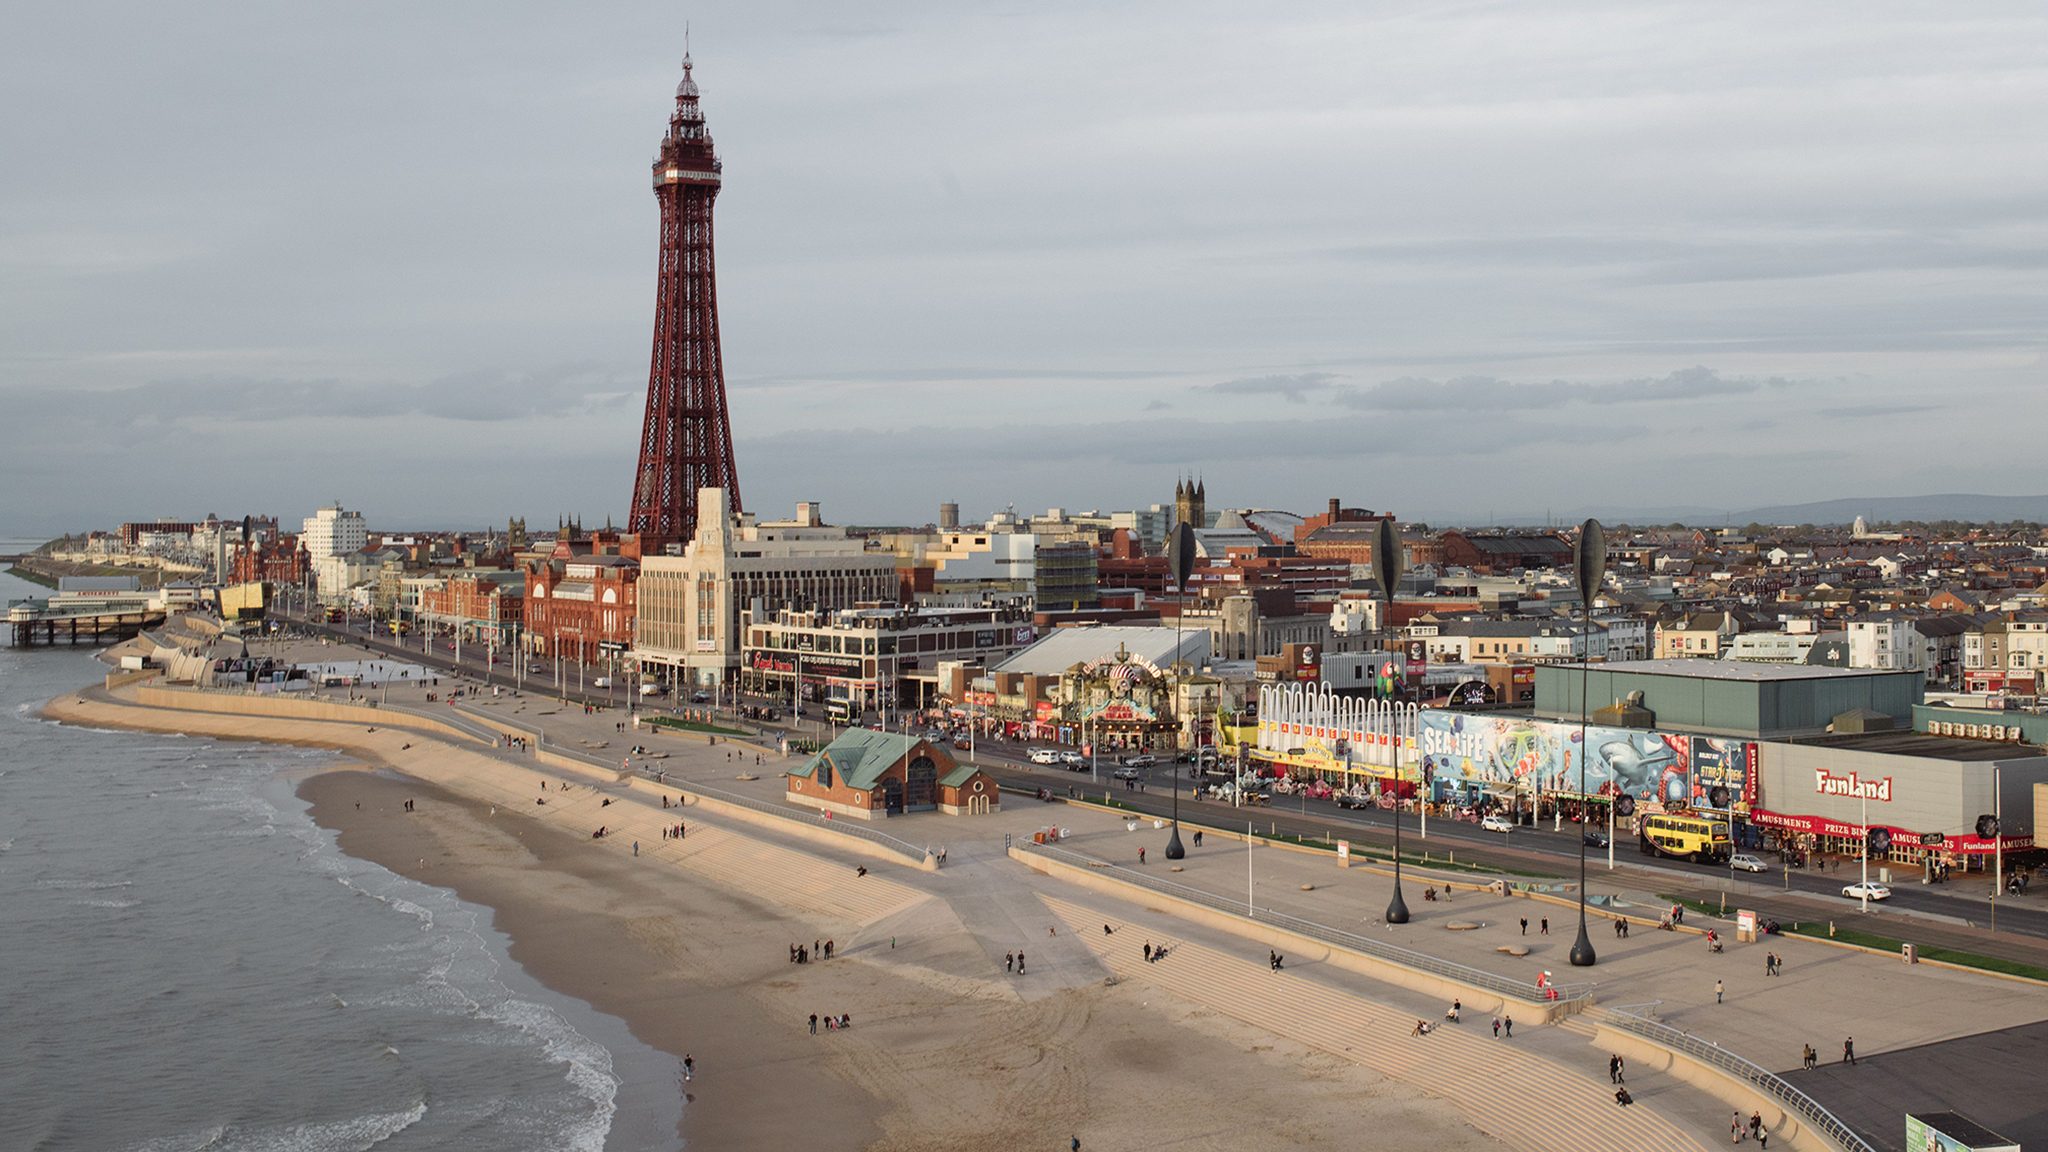 Aerial shot of blackpool tower and beach